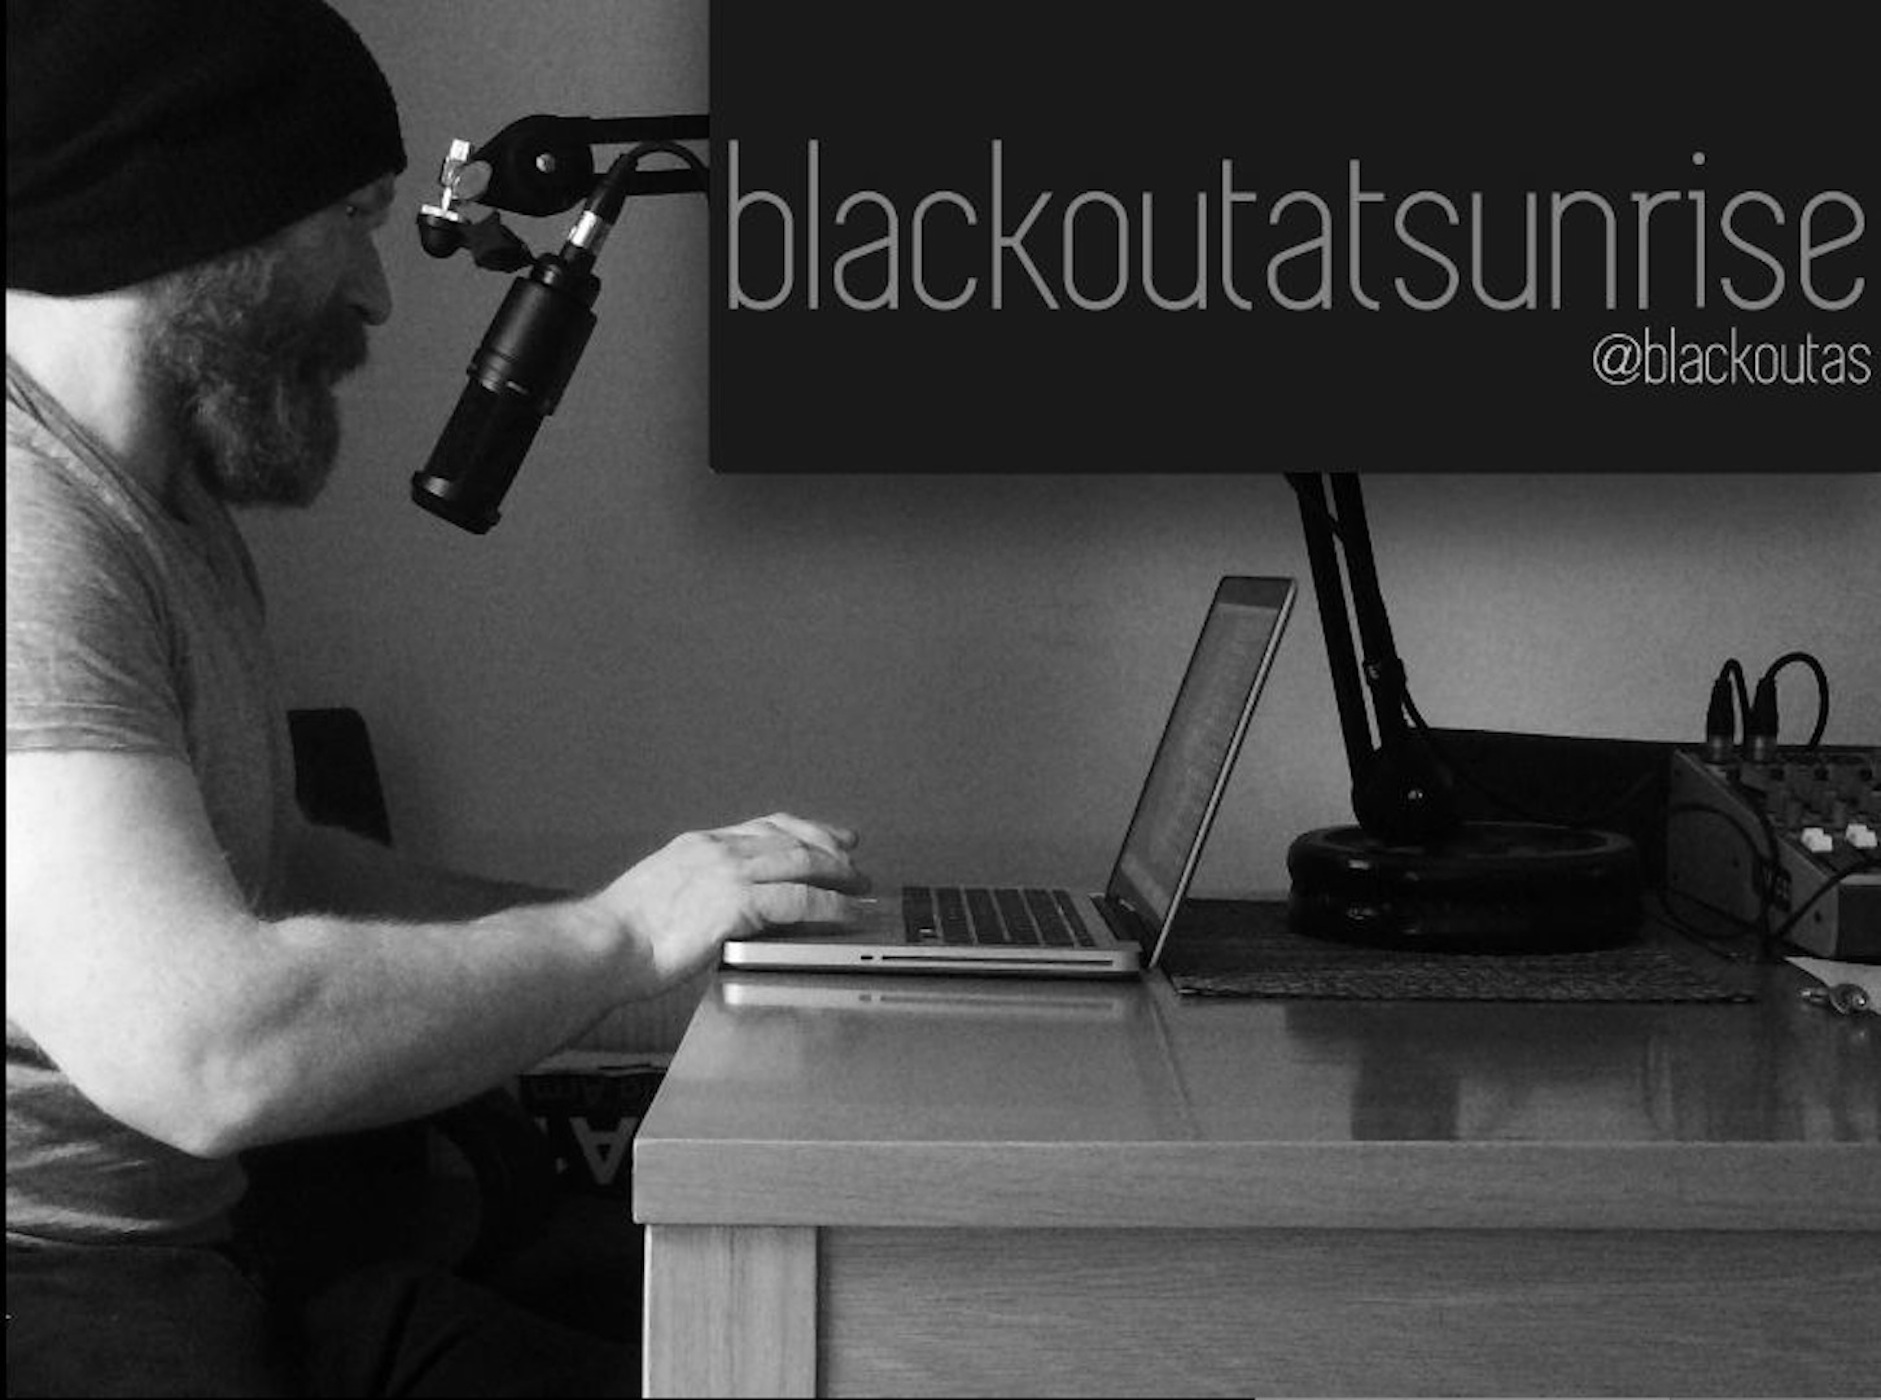 BlackoutAtSunrise Media